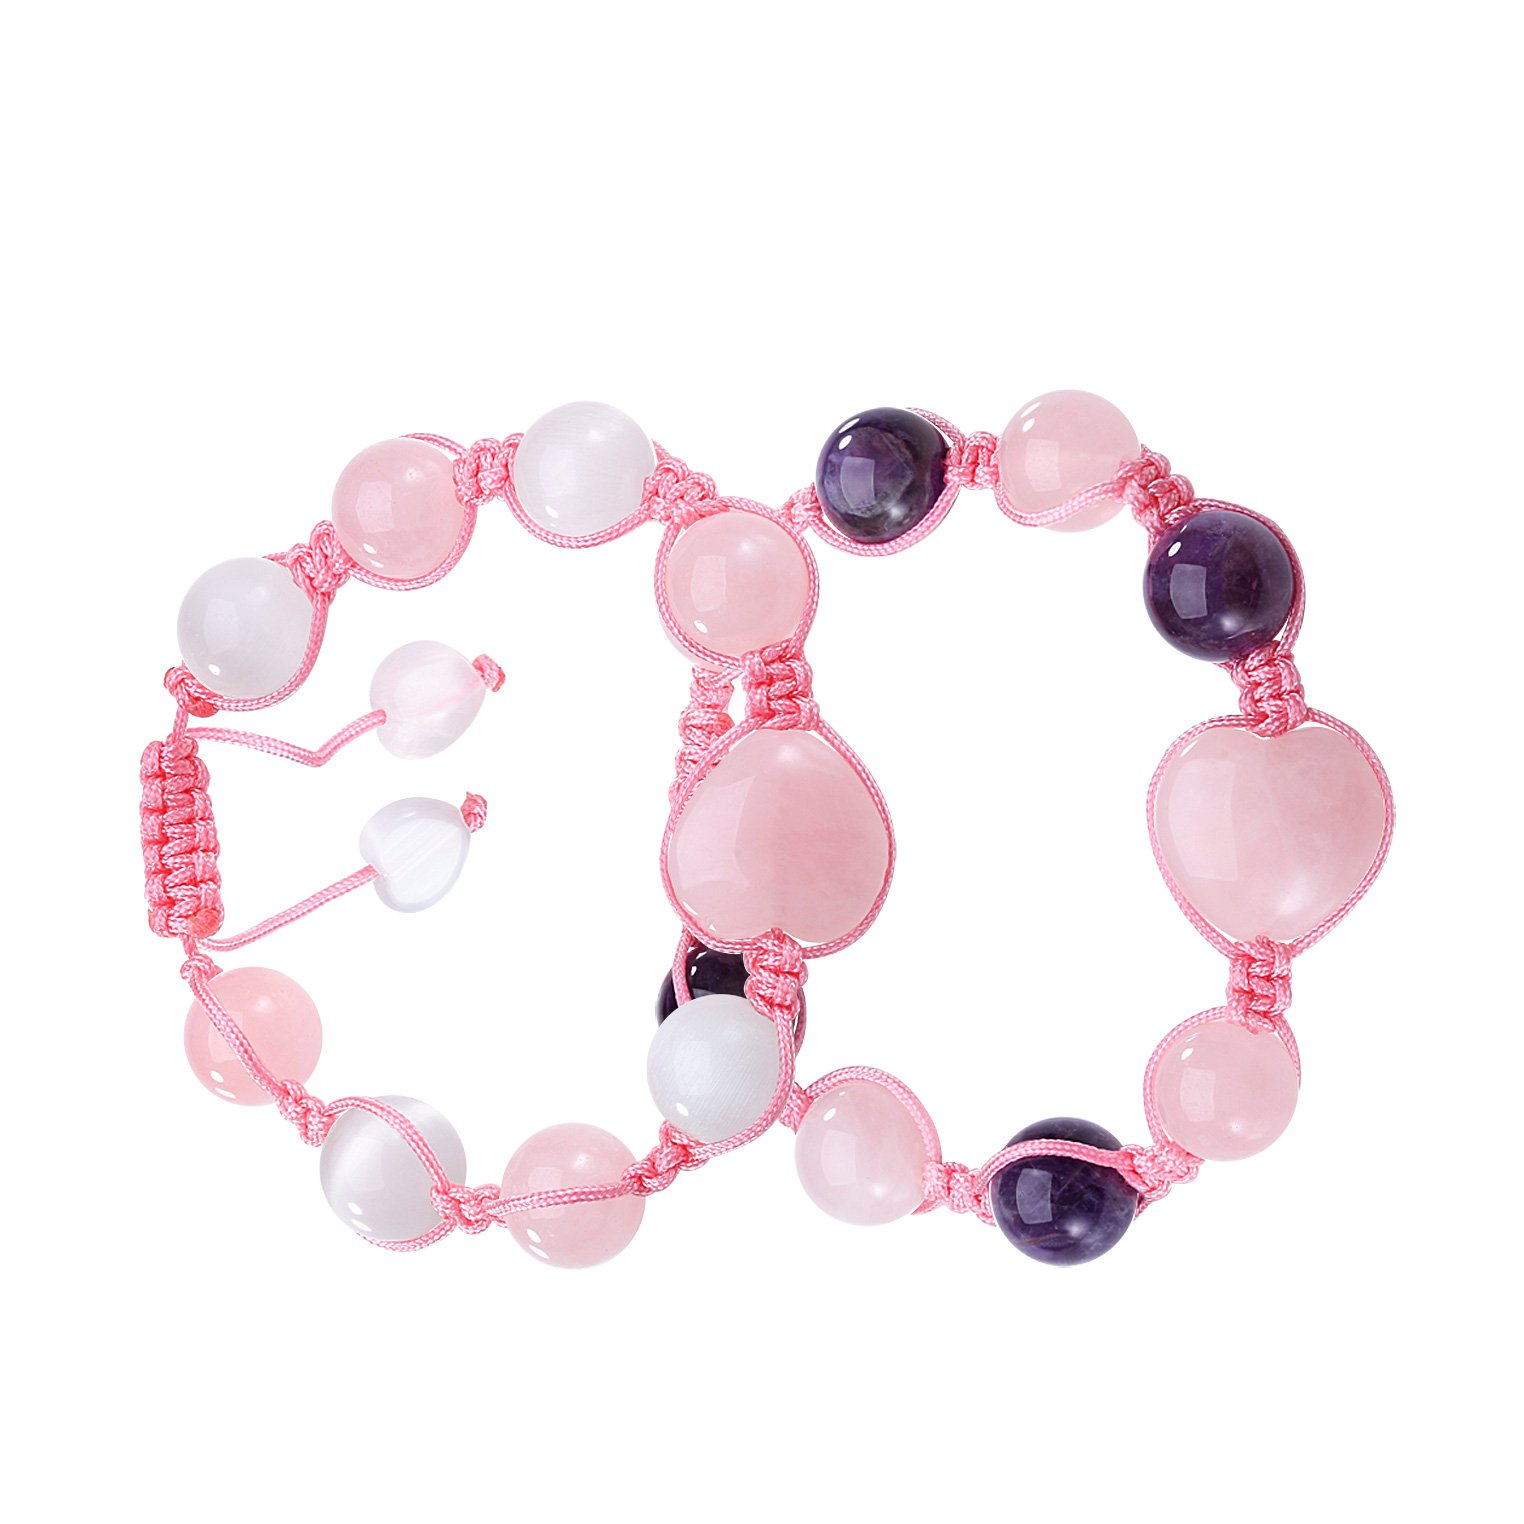 Yin Yang Hearts Love Couples or Best Friends Rose Purple Quartz White Simulated Cats Eye Bracelets